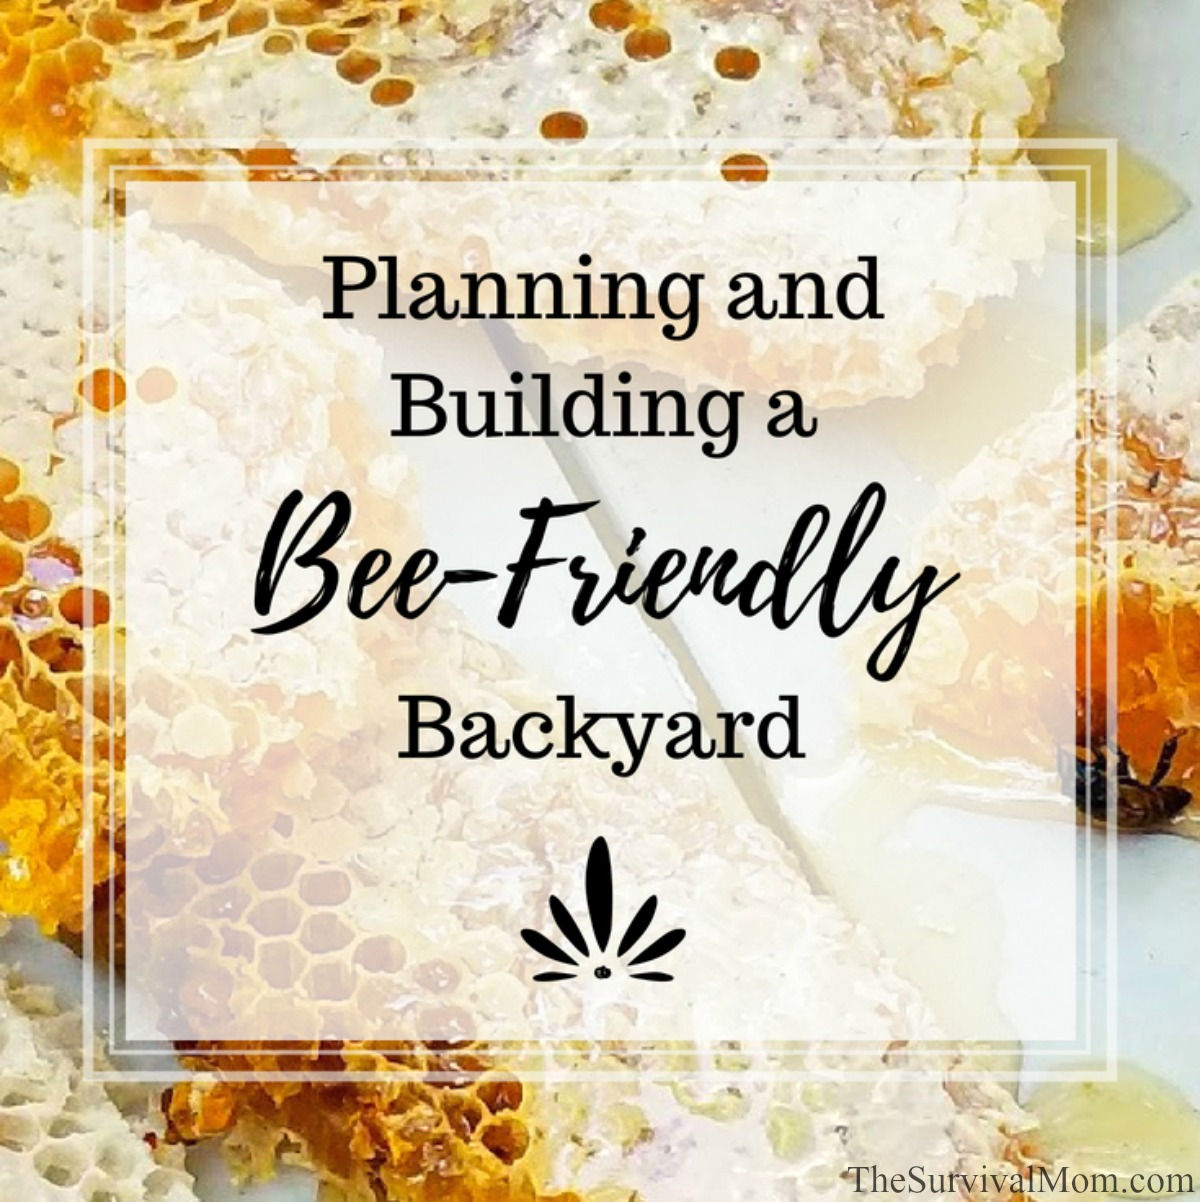 Planning and Building a Bee-Friendly Backyard via The Survival Mom